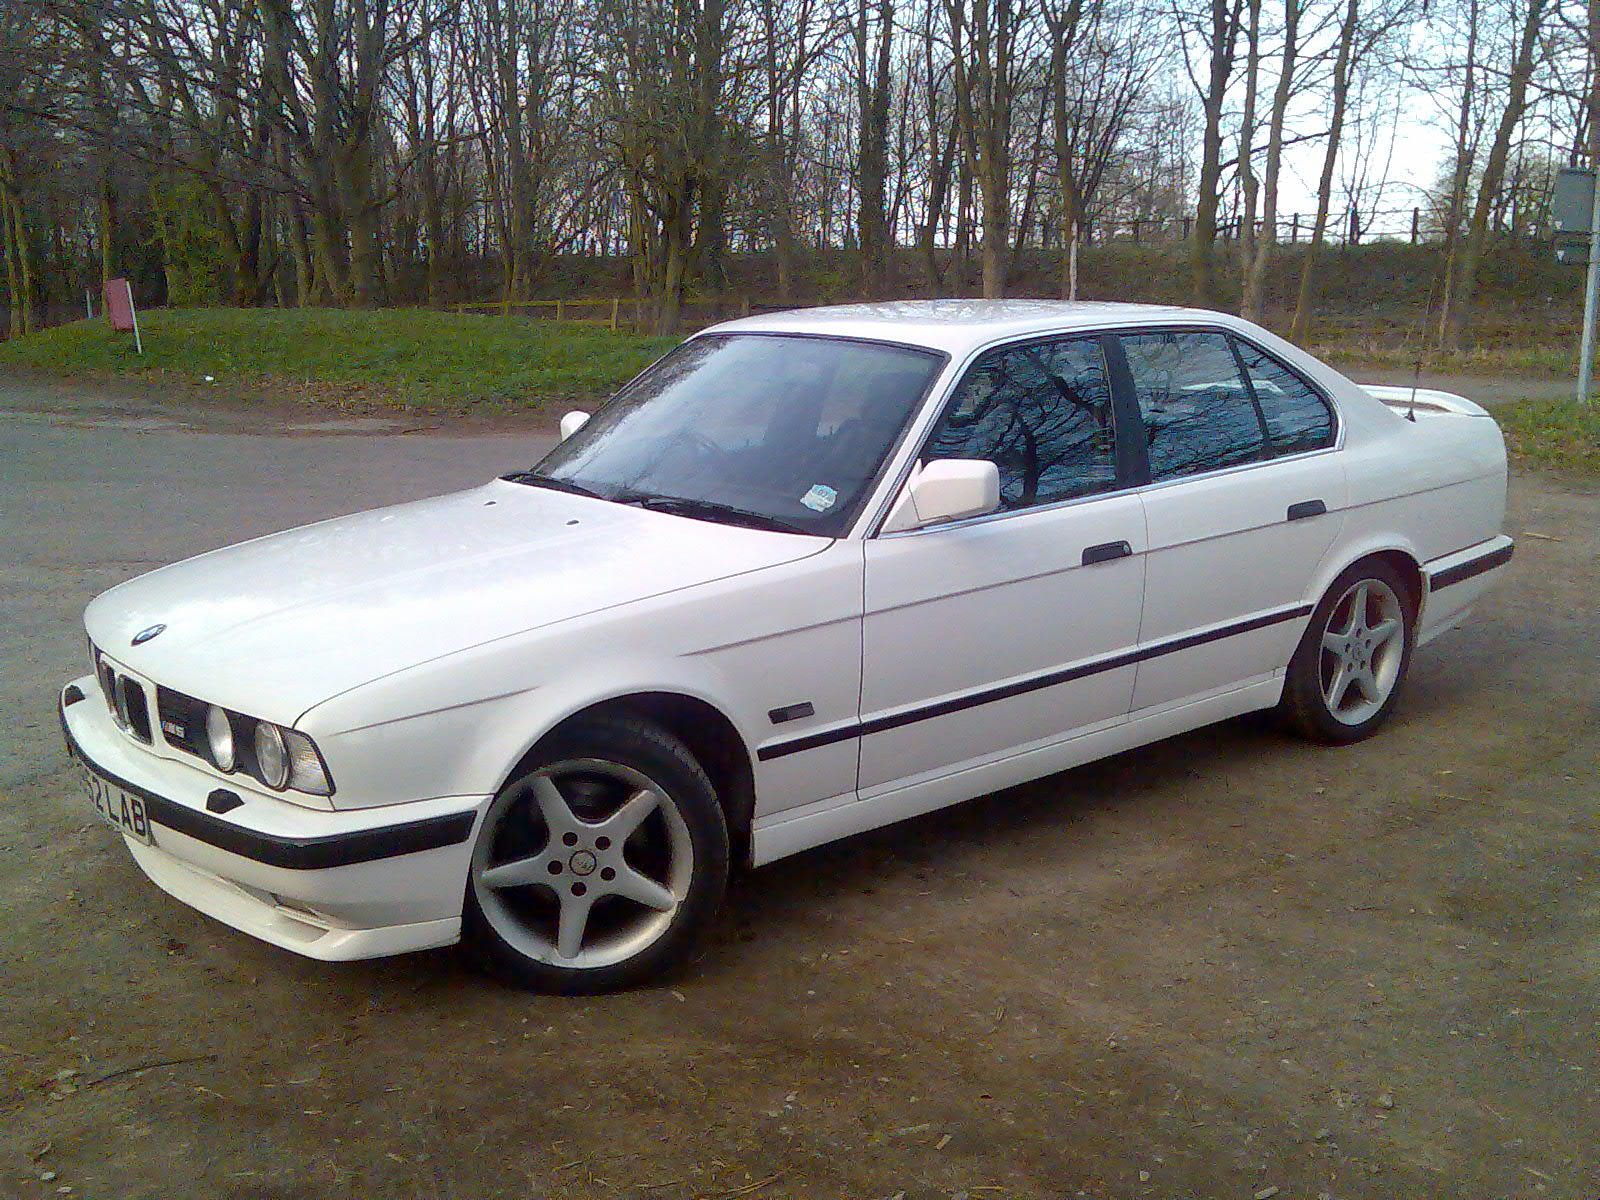 1990 bmw 5 series - information and photos - zombiedrive